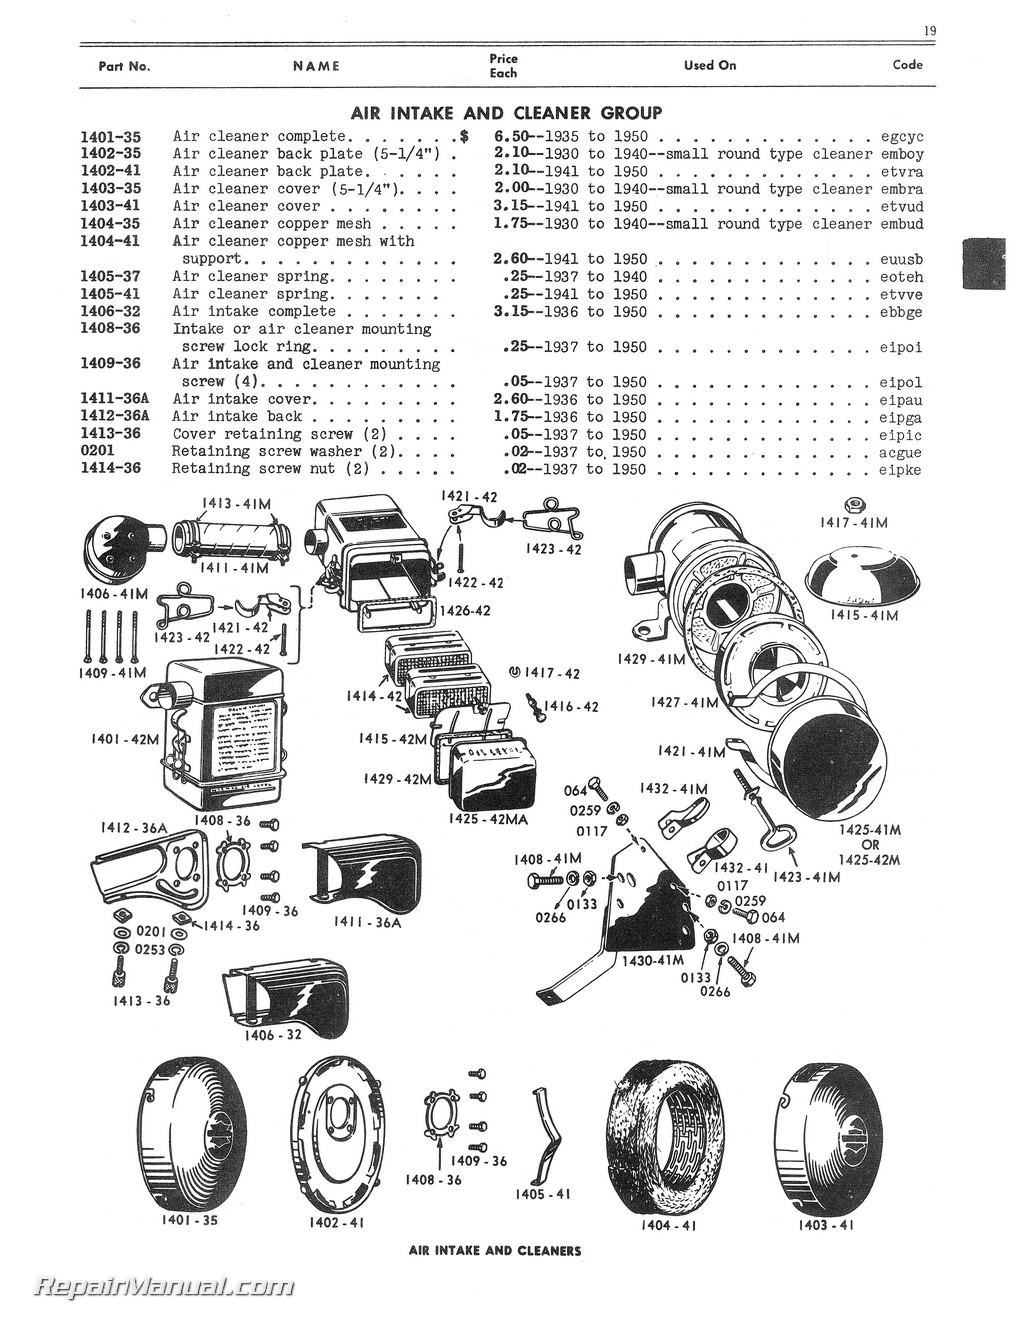 Kenmore Washer 40272900 Wire Diagram further M27 Wiring Diagram in addition Mitsubishi Galant 2 0 1991 Auto Images And Specification With Regard To 2002 Mitsubishi Galant Engine Diagram together with M12 Tank Wiring Diagrams in addition BMW M47. on m47 wiring diagram